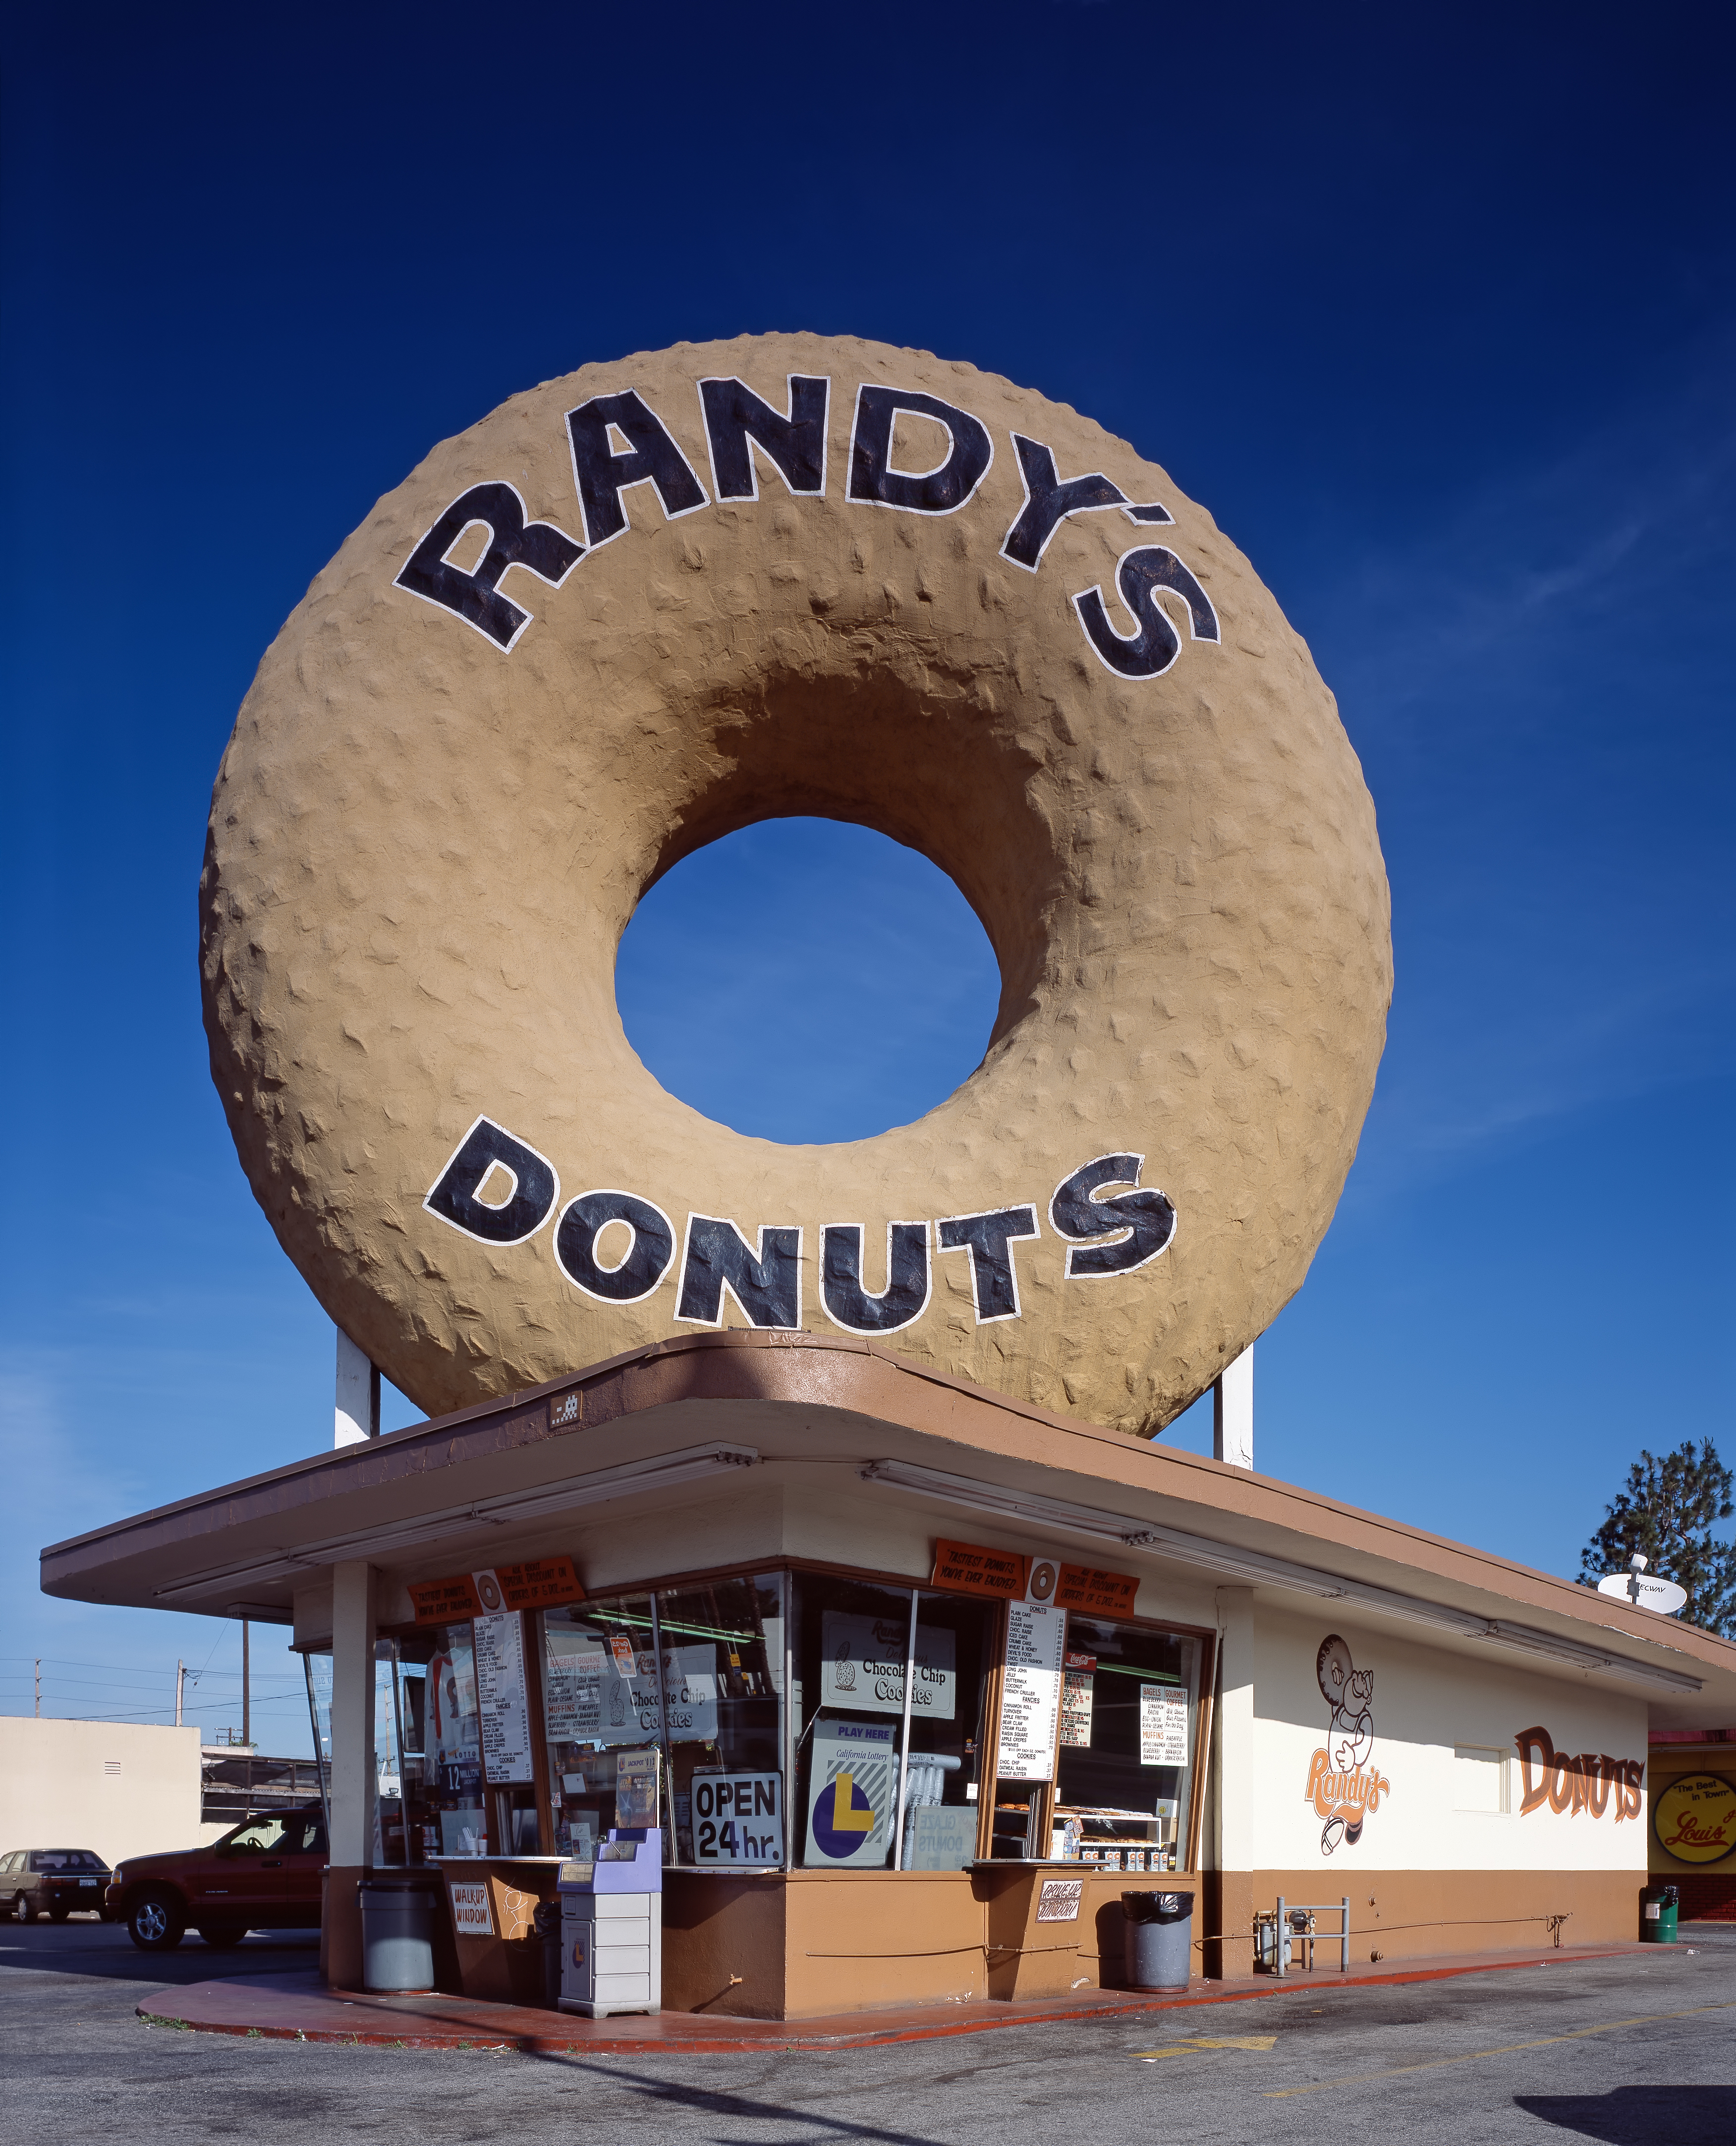 A picture of a Randy s Donuts location with donut sculpture on the roof